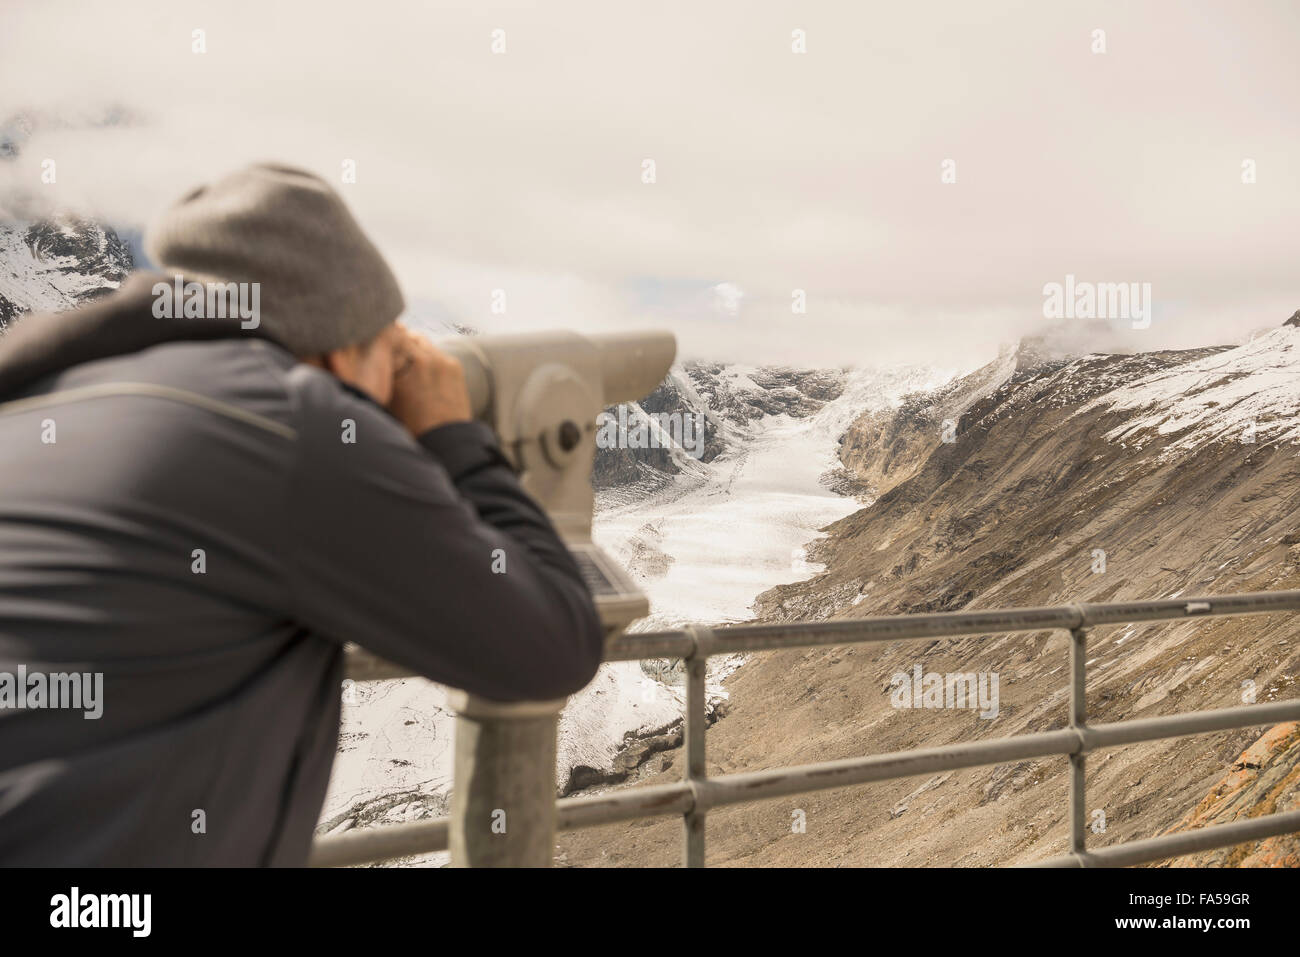 Mature man looking at view with telescope, Pasterze glacier, National Park Hohe Tauern, Carinthia, Austria Stock Photo